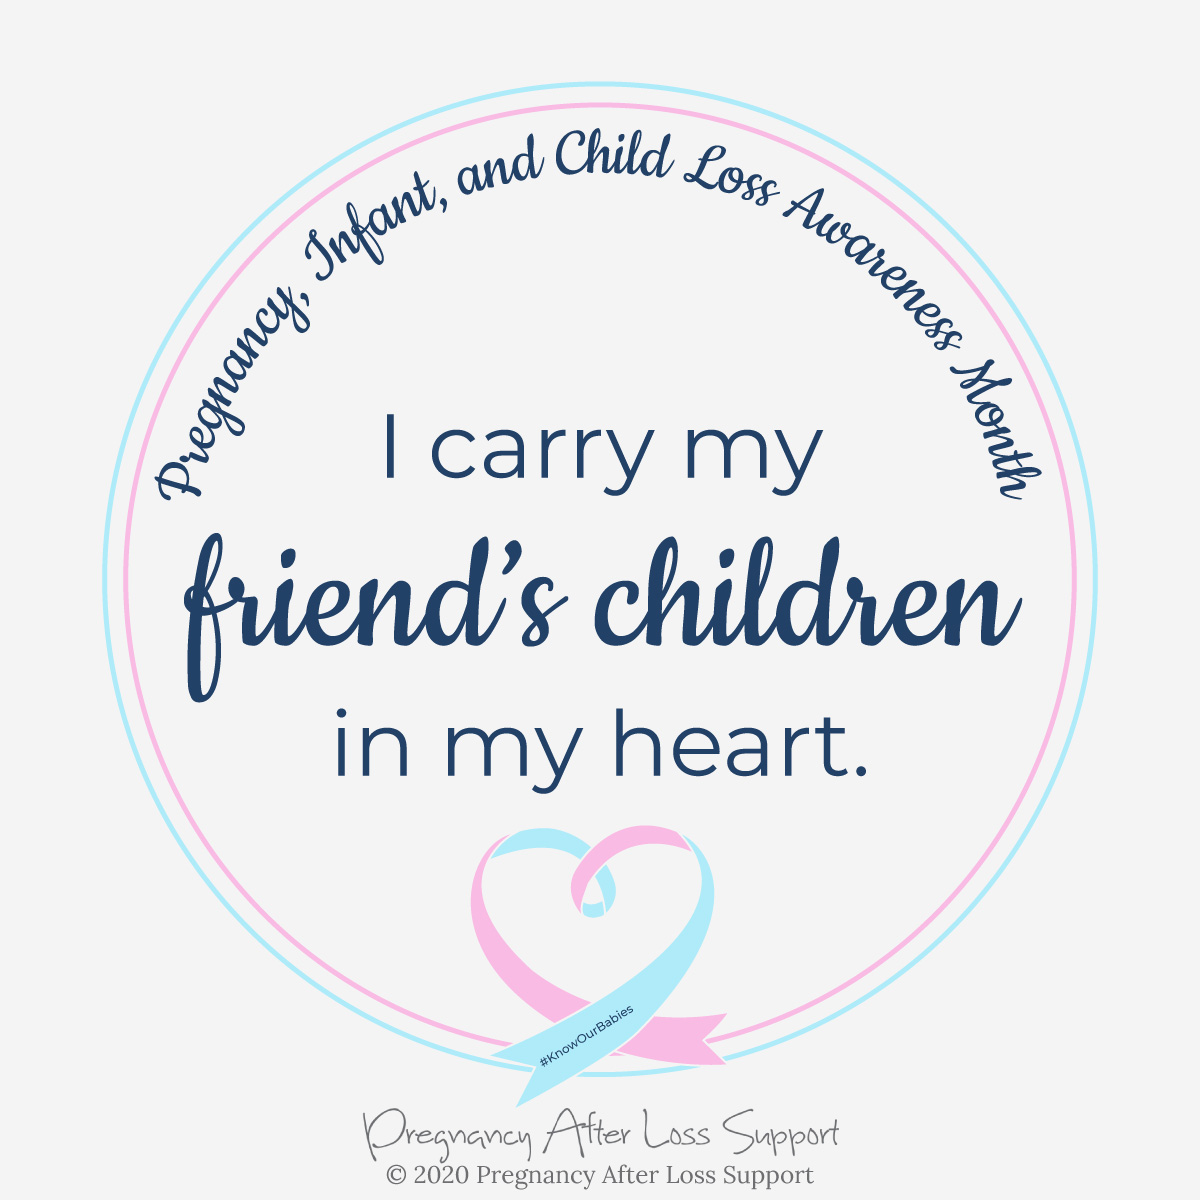 I carry my friend's children in my heart - Pregnancy, Infant, and Child Loss Awareness Month